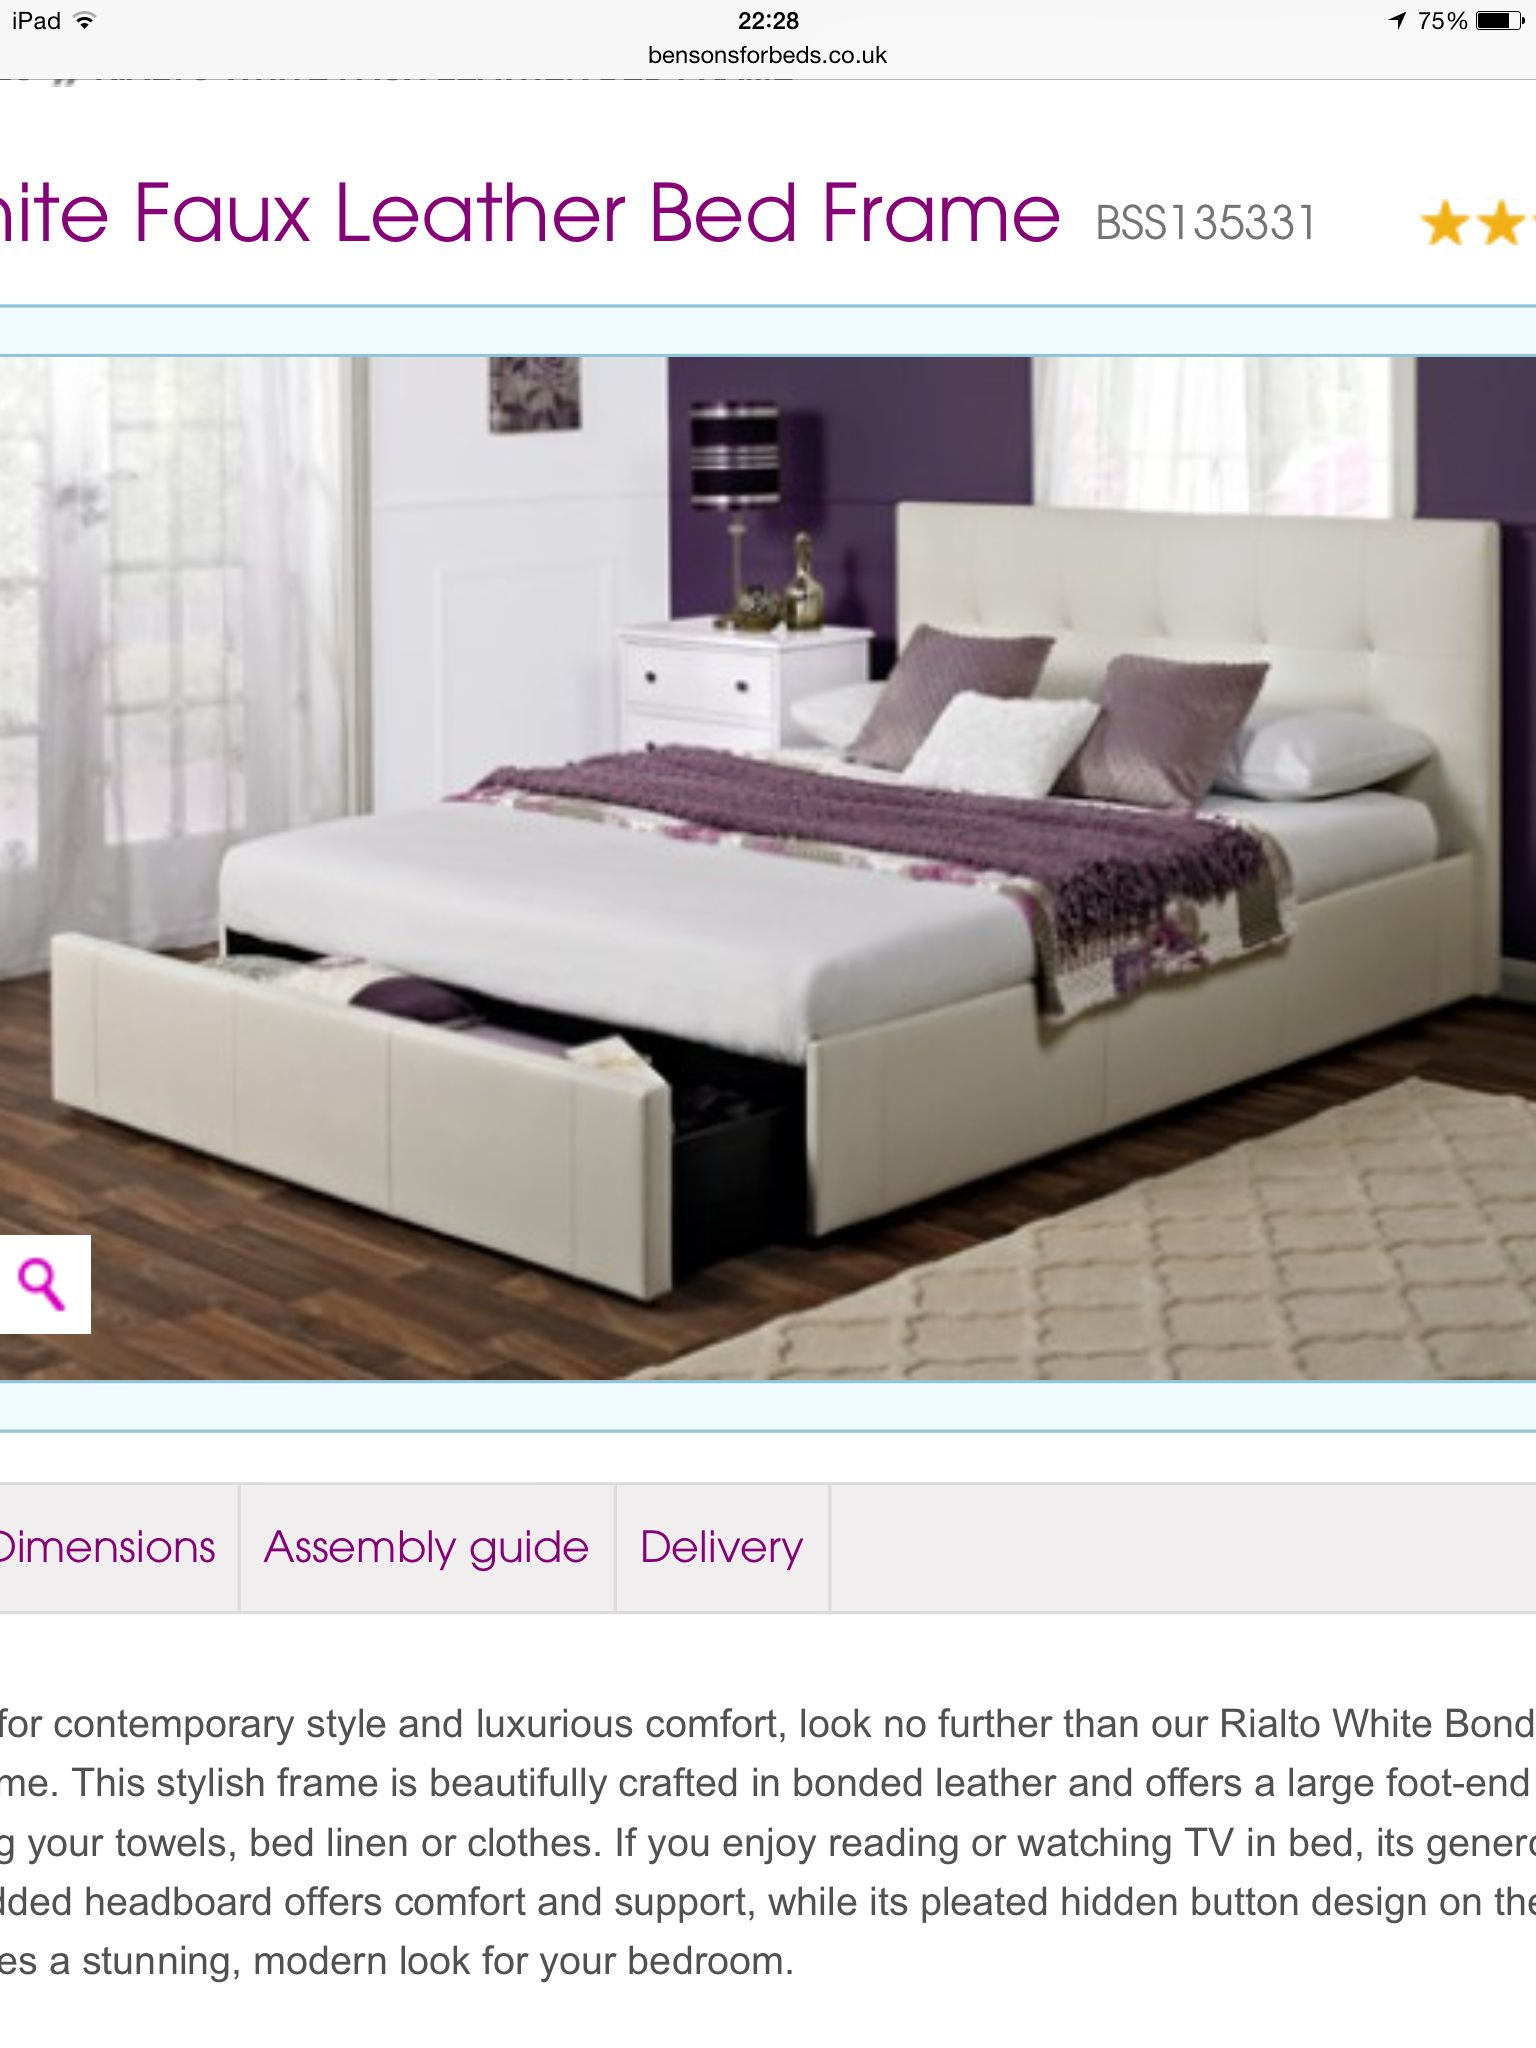 Rialto White Faux Leather Bed Frame Bensonforbedscouk